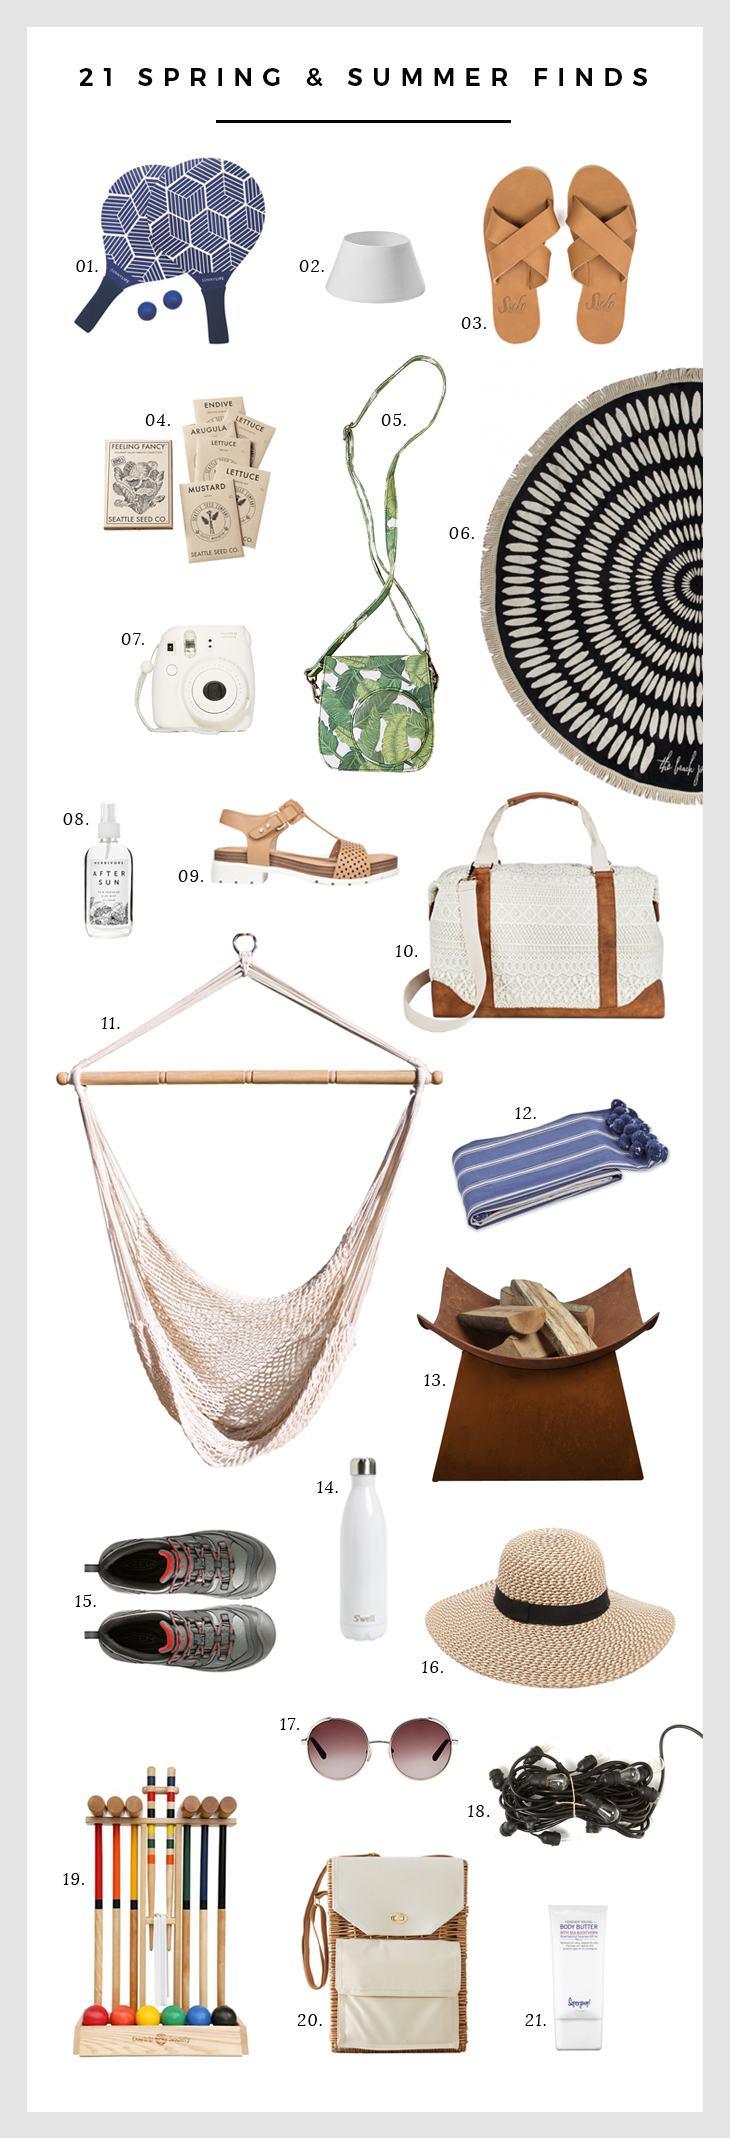 21 Spring and Summer Finds